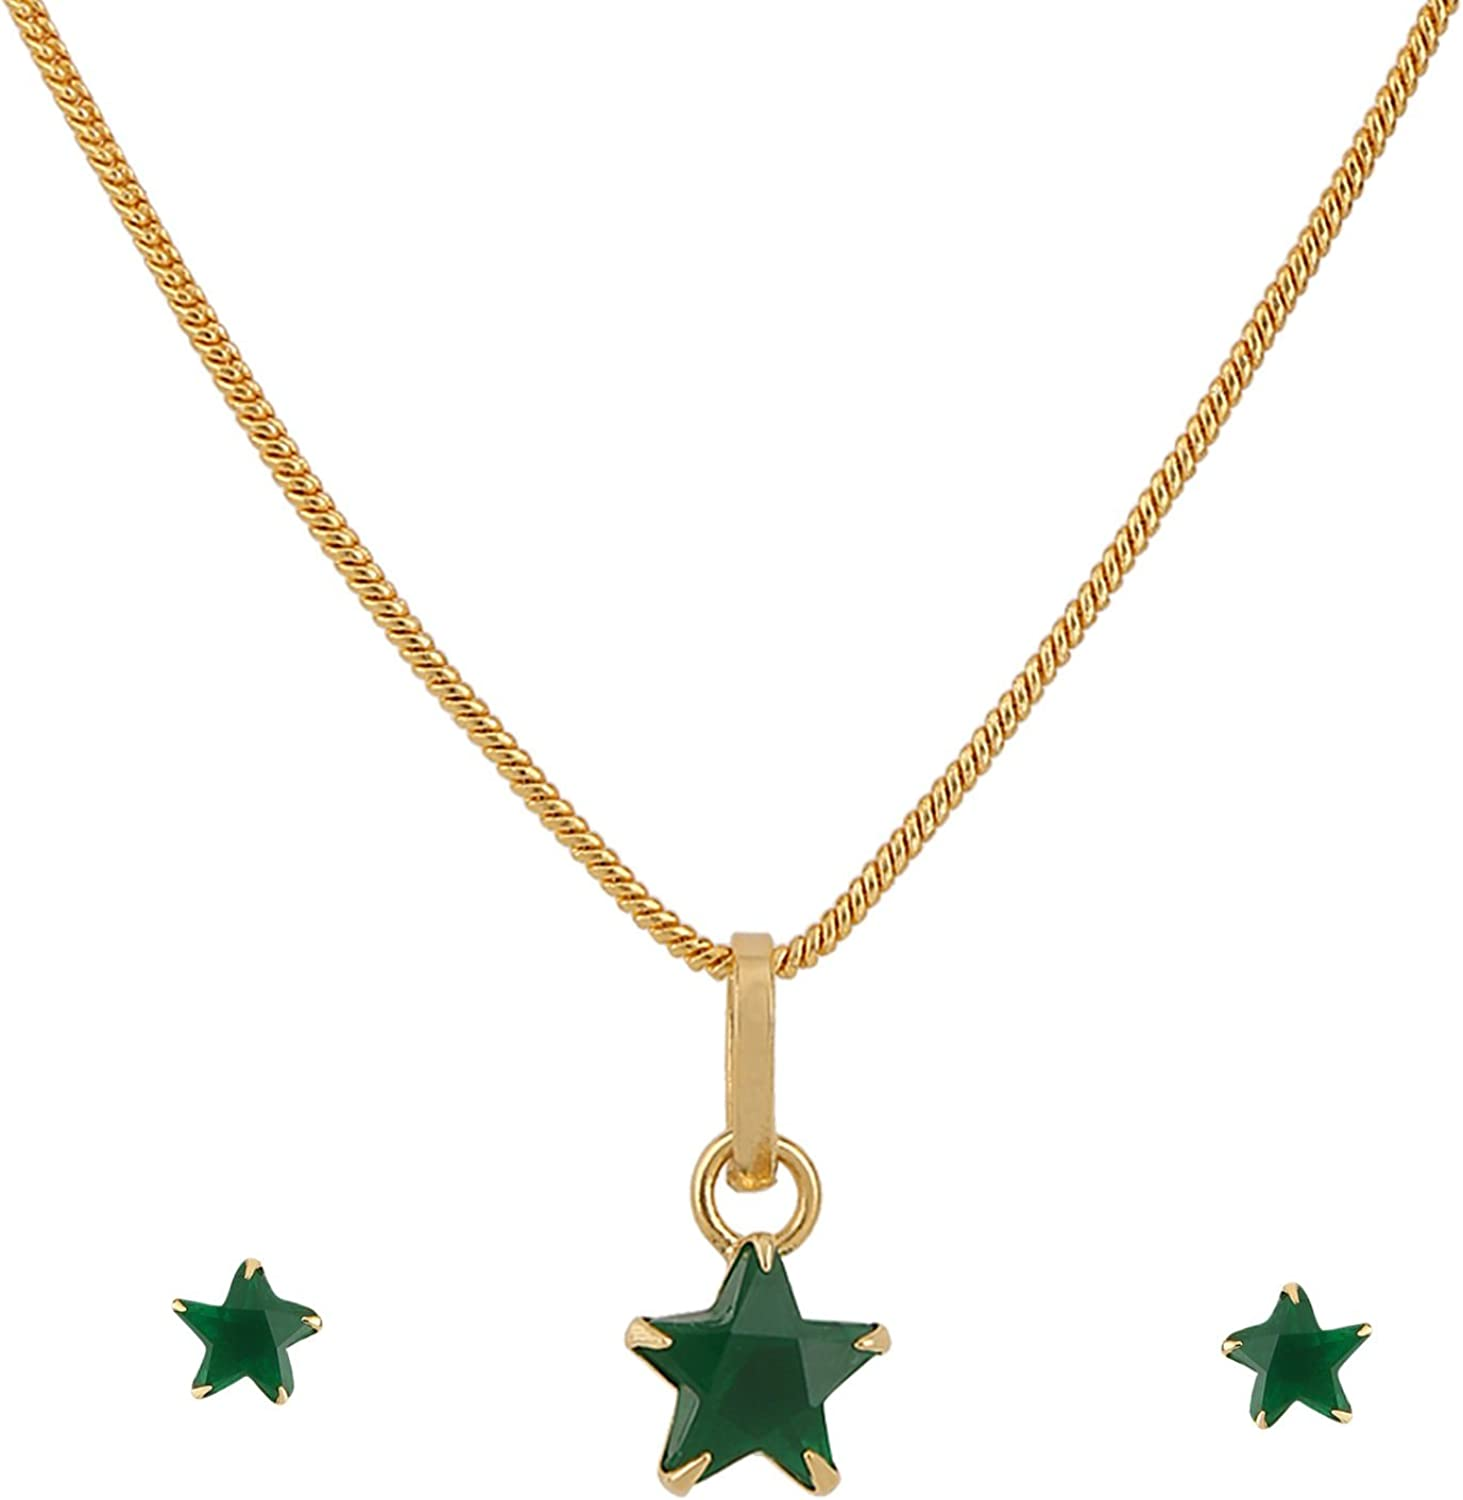 Efulgenz 14K Gold Plated Green Star Cubic Zirconia Pendant Necklace and Earrings Jewelry Set for Women Girls Brides Bridesmaids